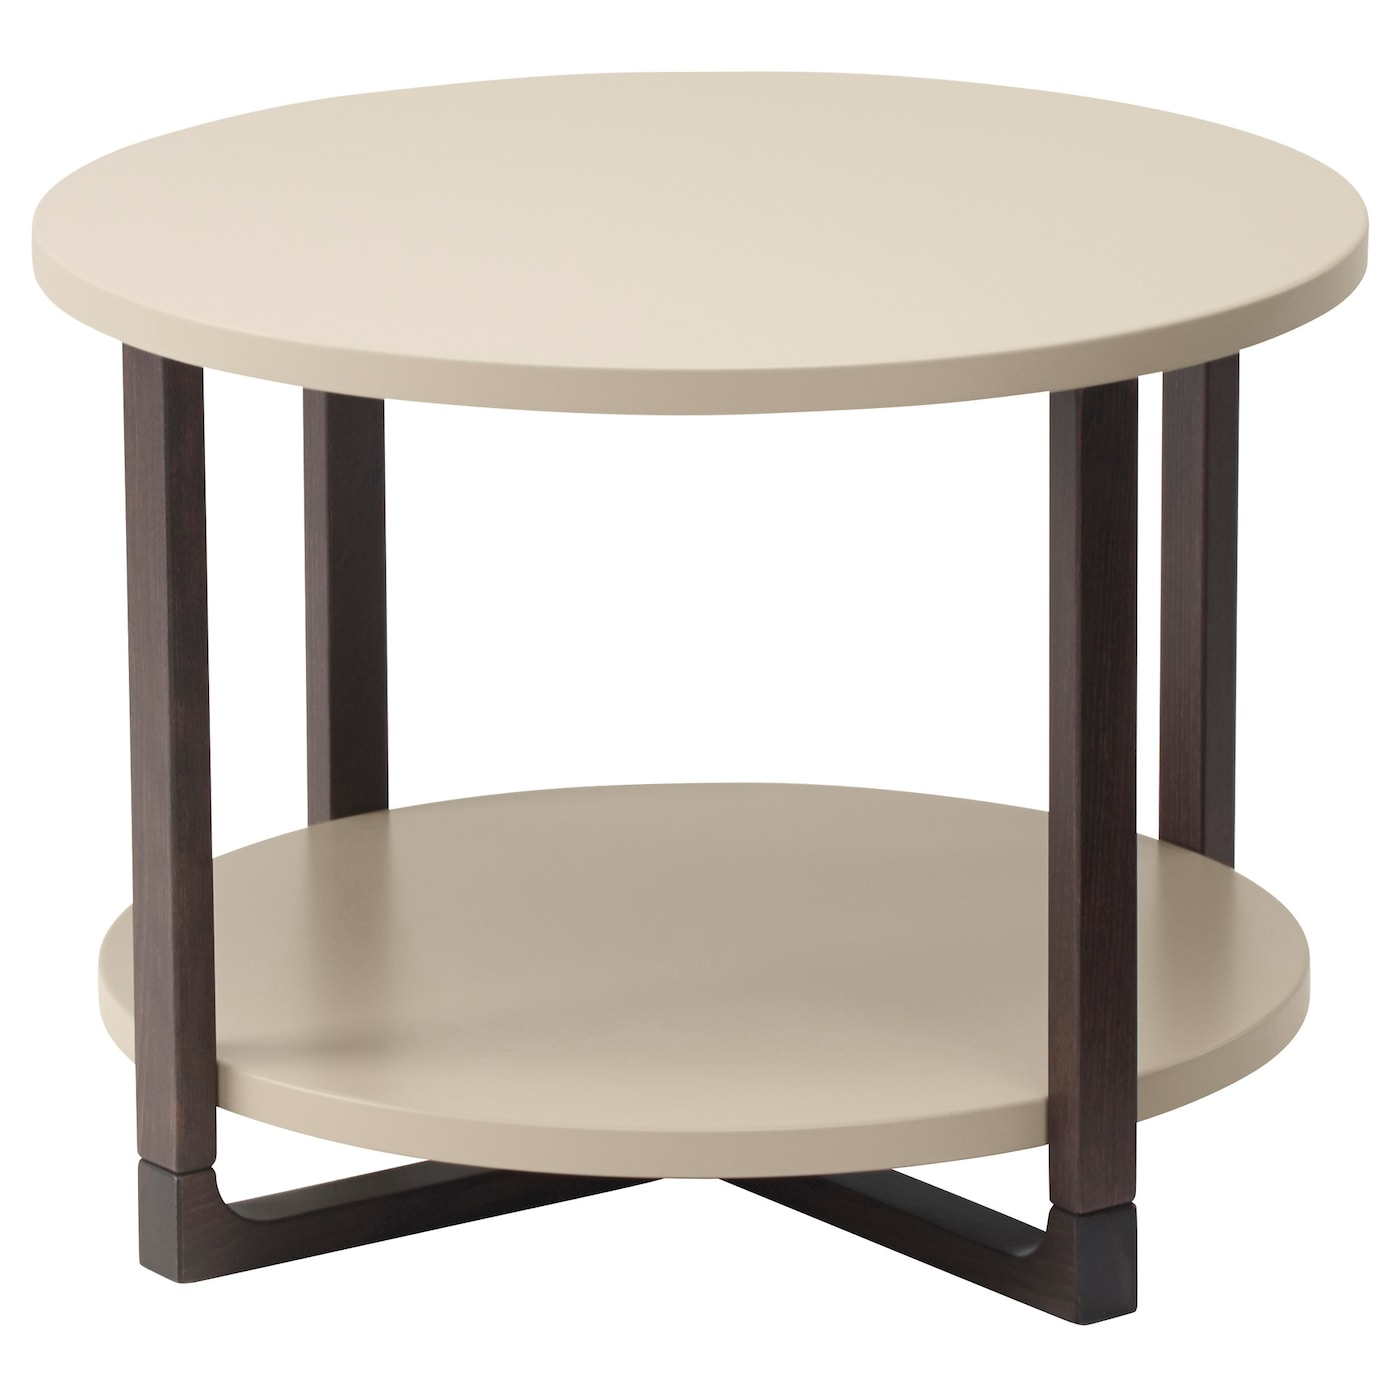 Rissna side table beige 60 cm ikea - Table basse verre ikea ...